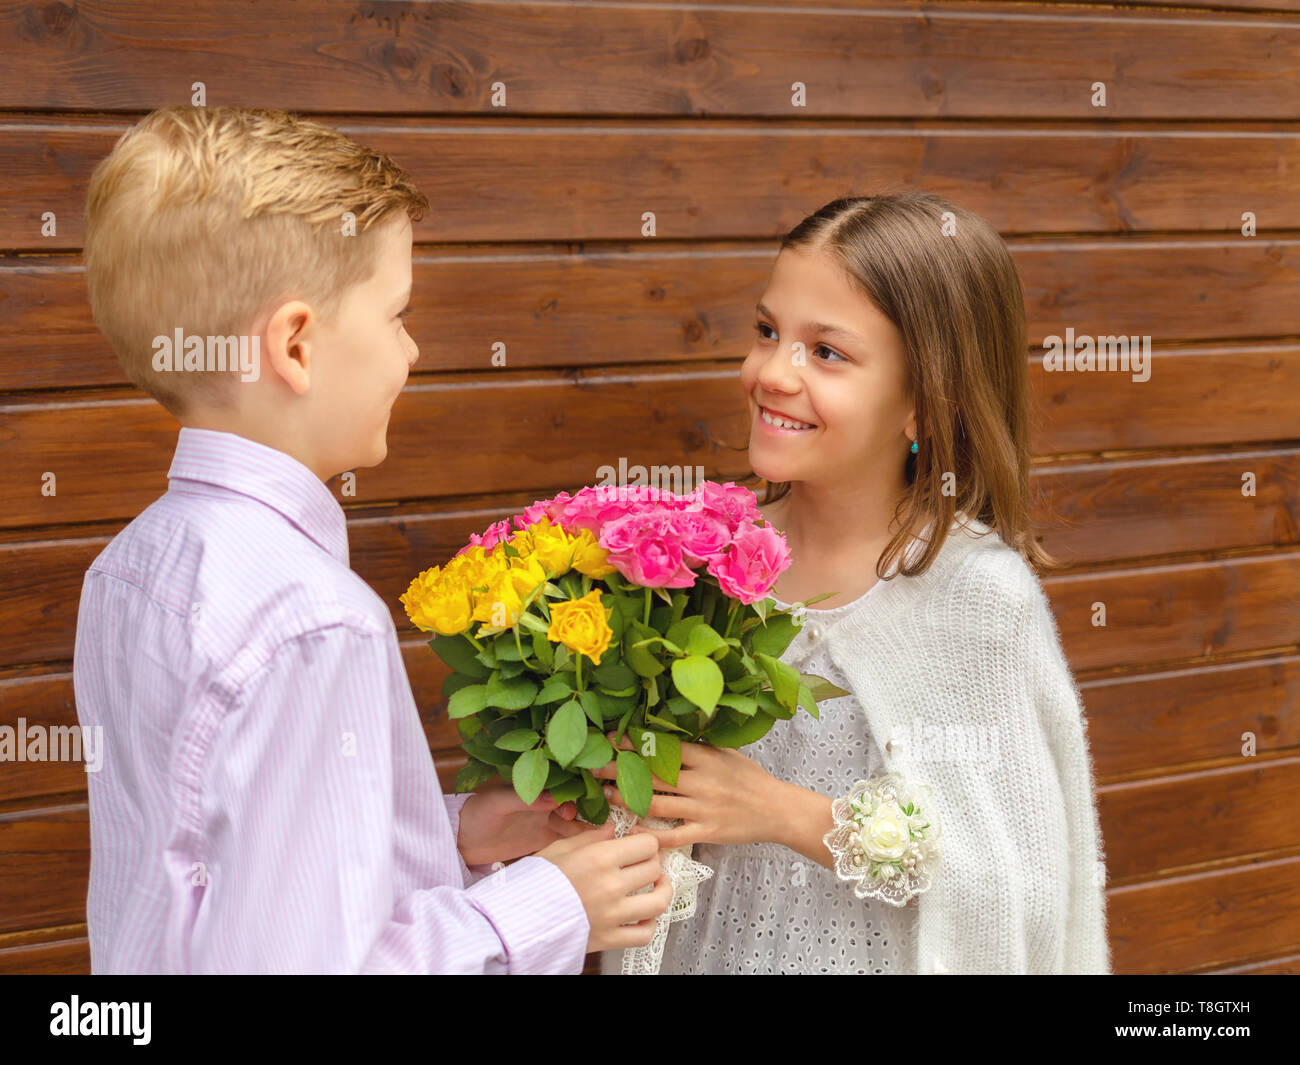 Cute little boy giving bouquet of flowers to charming little lady – smiling girl in love receiving yellow and pink roses from friend – generation z - Stock Image